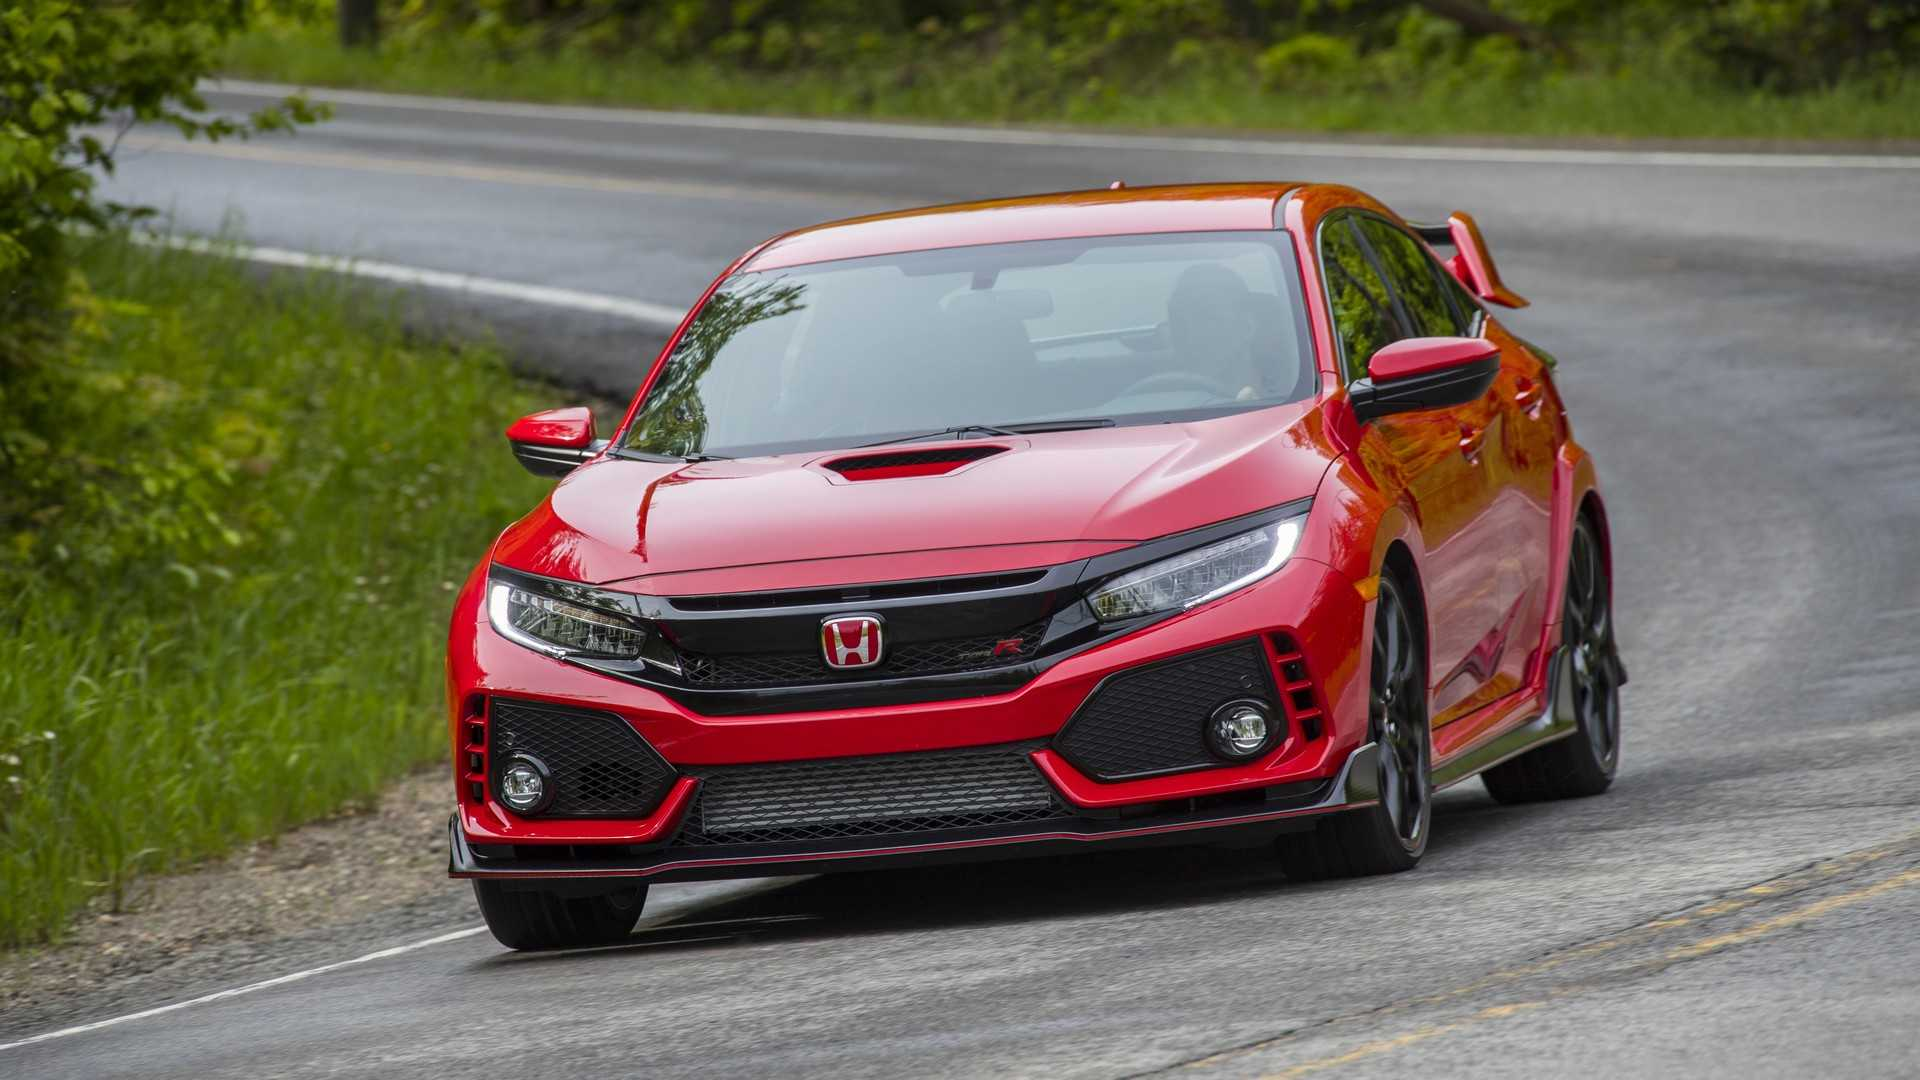 78 New 2019 Honda Civic Si Pictures